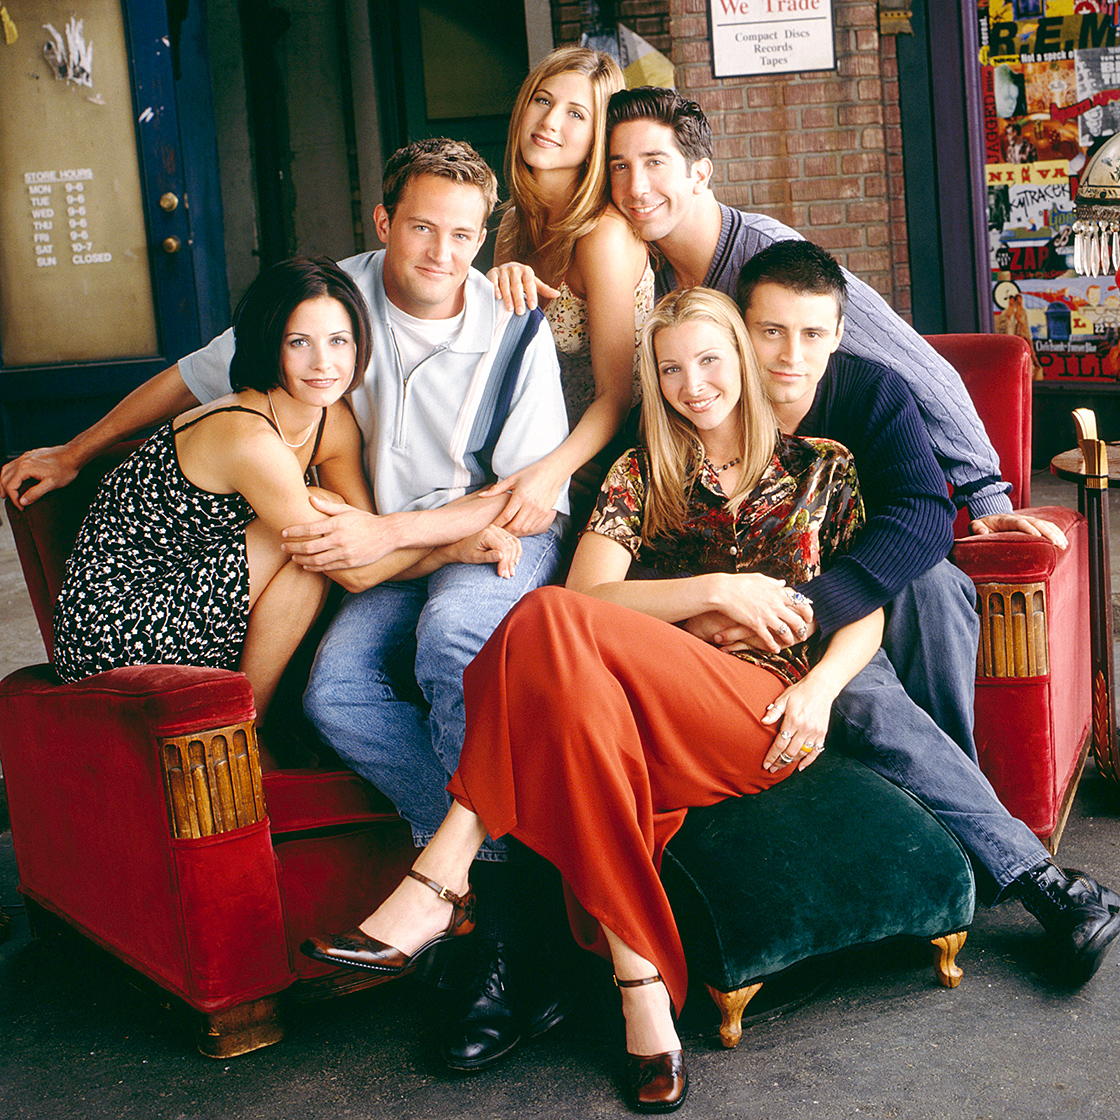 On September 22, 1994, TV audiences got six new pals with the cast of the hit NBC series Friends . Now, decades later, we've watched Jennifer Aniston (Rachel Green), Courteney Cox (Monica Geller), Lisa Kudrow (Phoebe Buffay), Matt LeBlanc (Joey Tribbiani), Matthew Perry (Chandler Bing) and David Schwimmer (Ross Geller) take on numerous other roles and even hit the big screen.